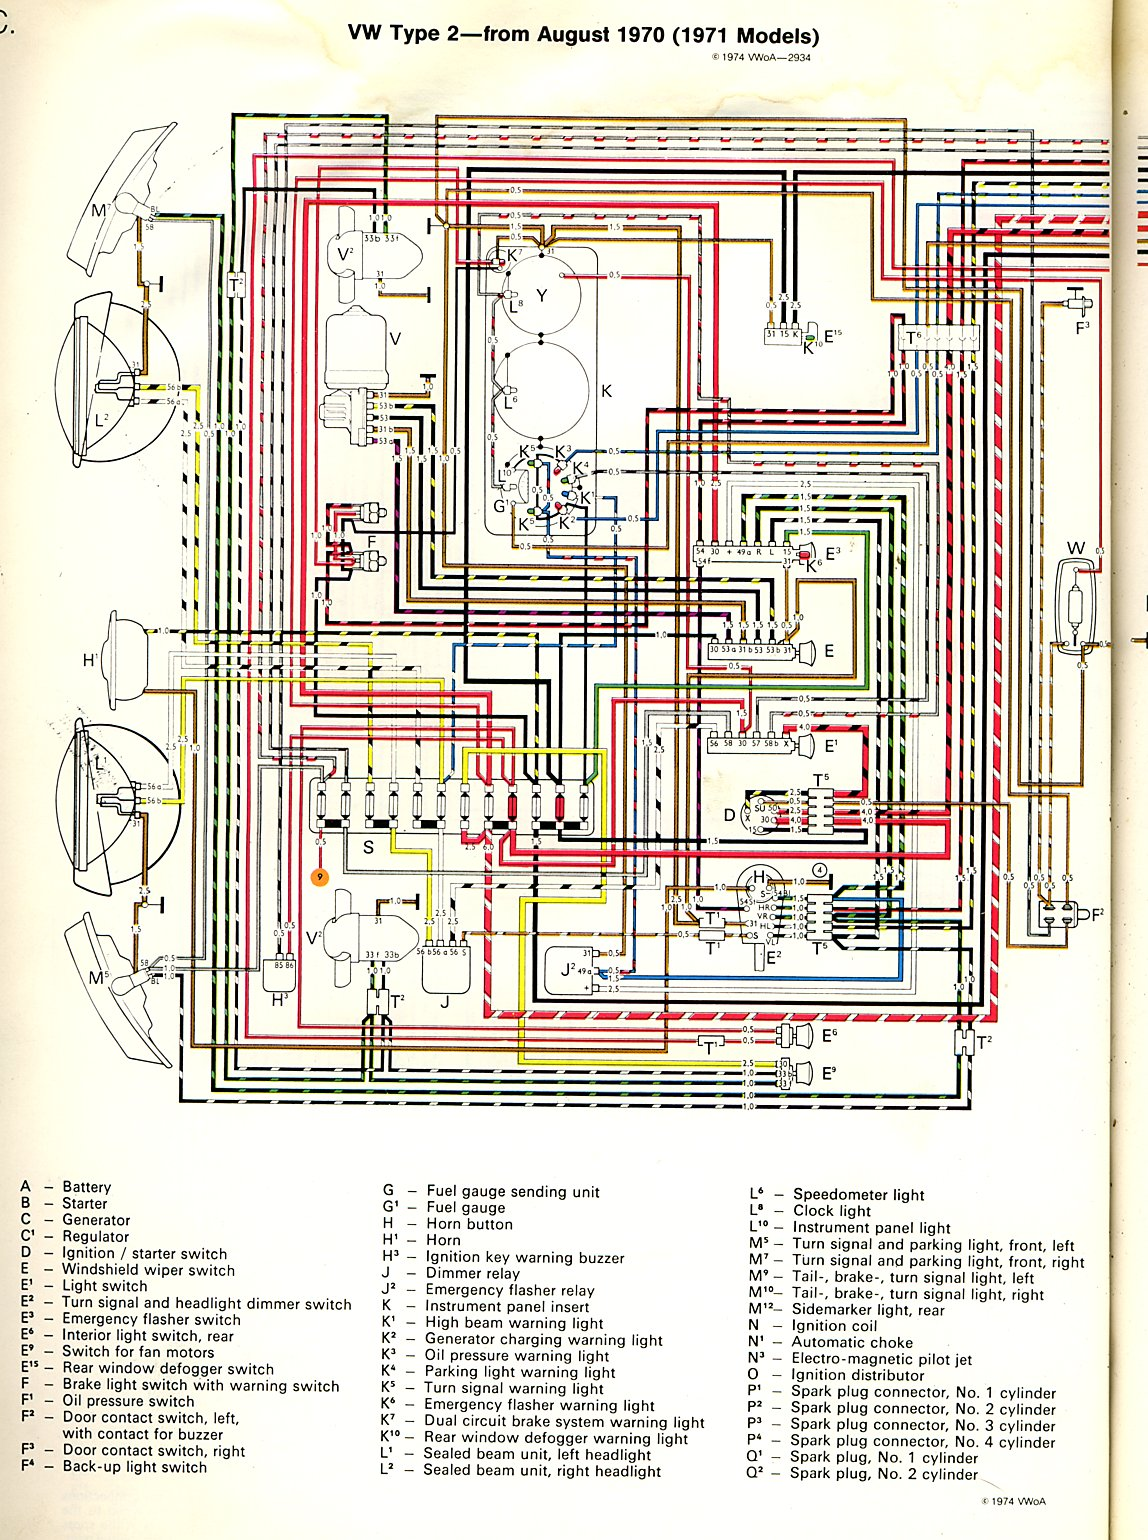 1970 08 Vw T2 Wiring Diagram Schematics Diagrams 1976 Corvette Dash Schematic Thesamba Com Type 2 Rh 1973 Beetle